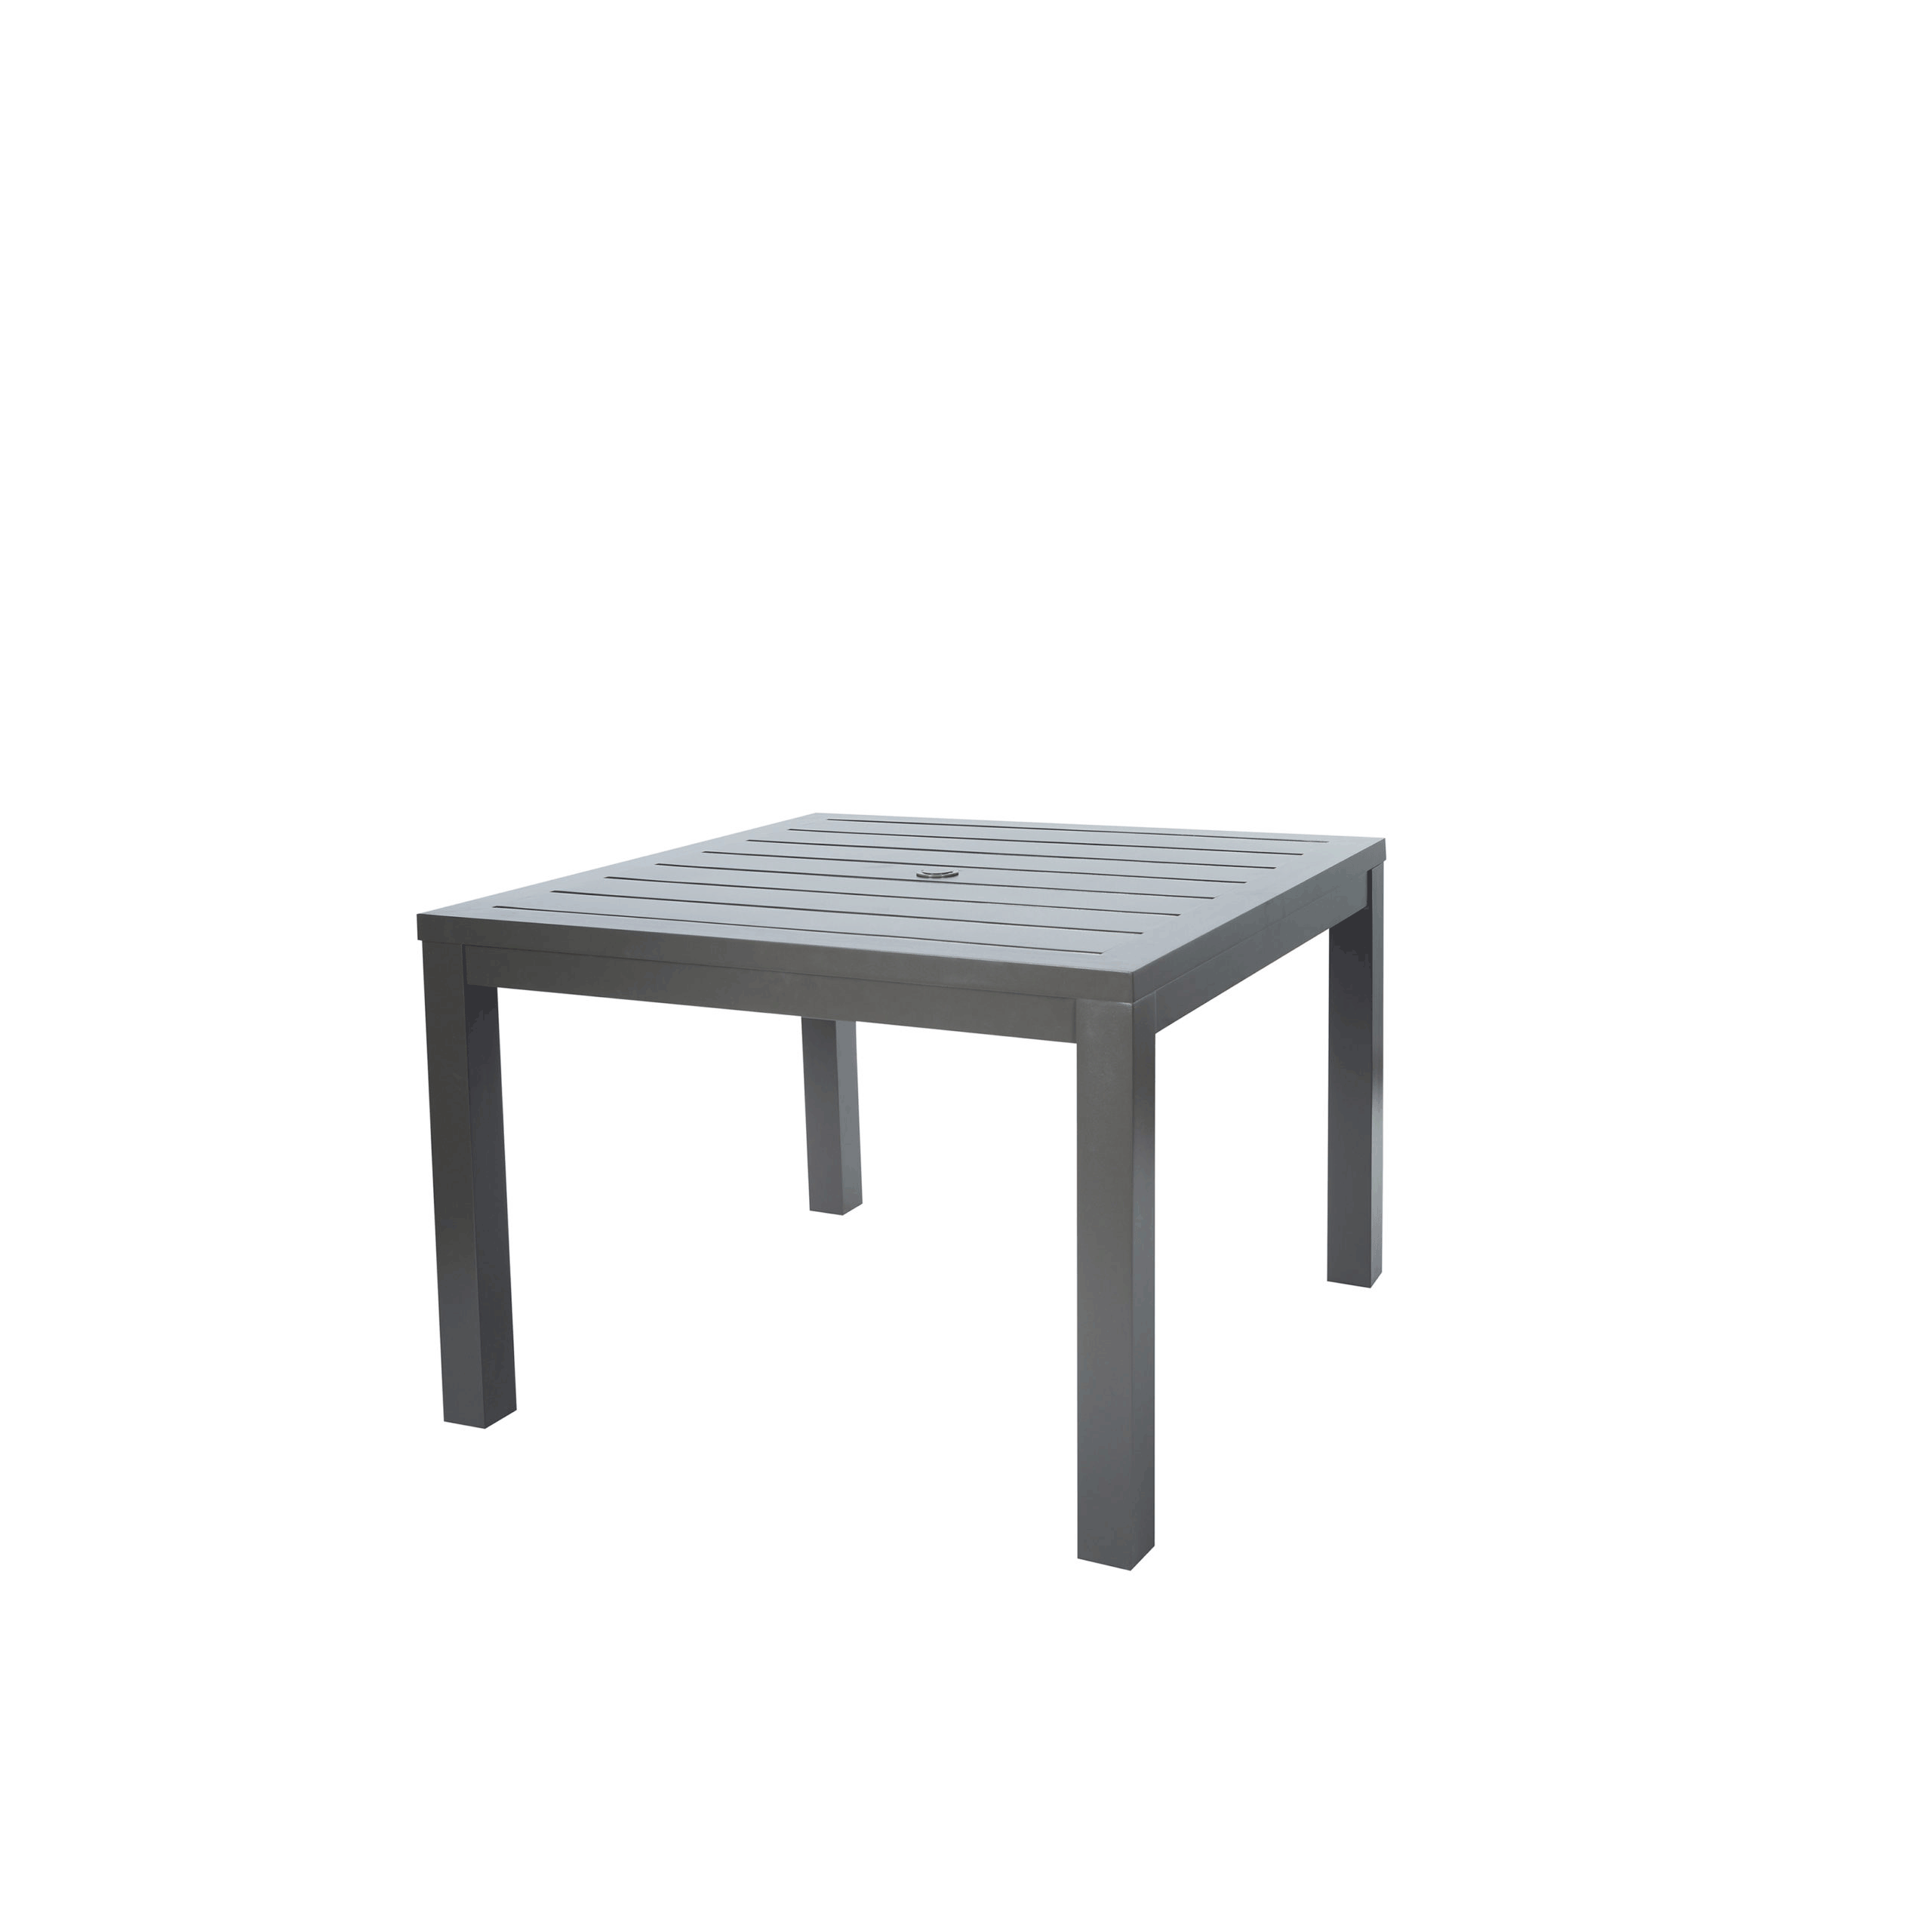 Palermo Square Dining Table